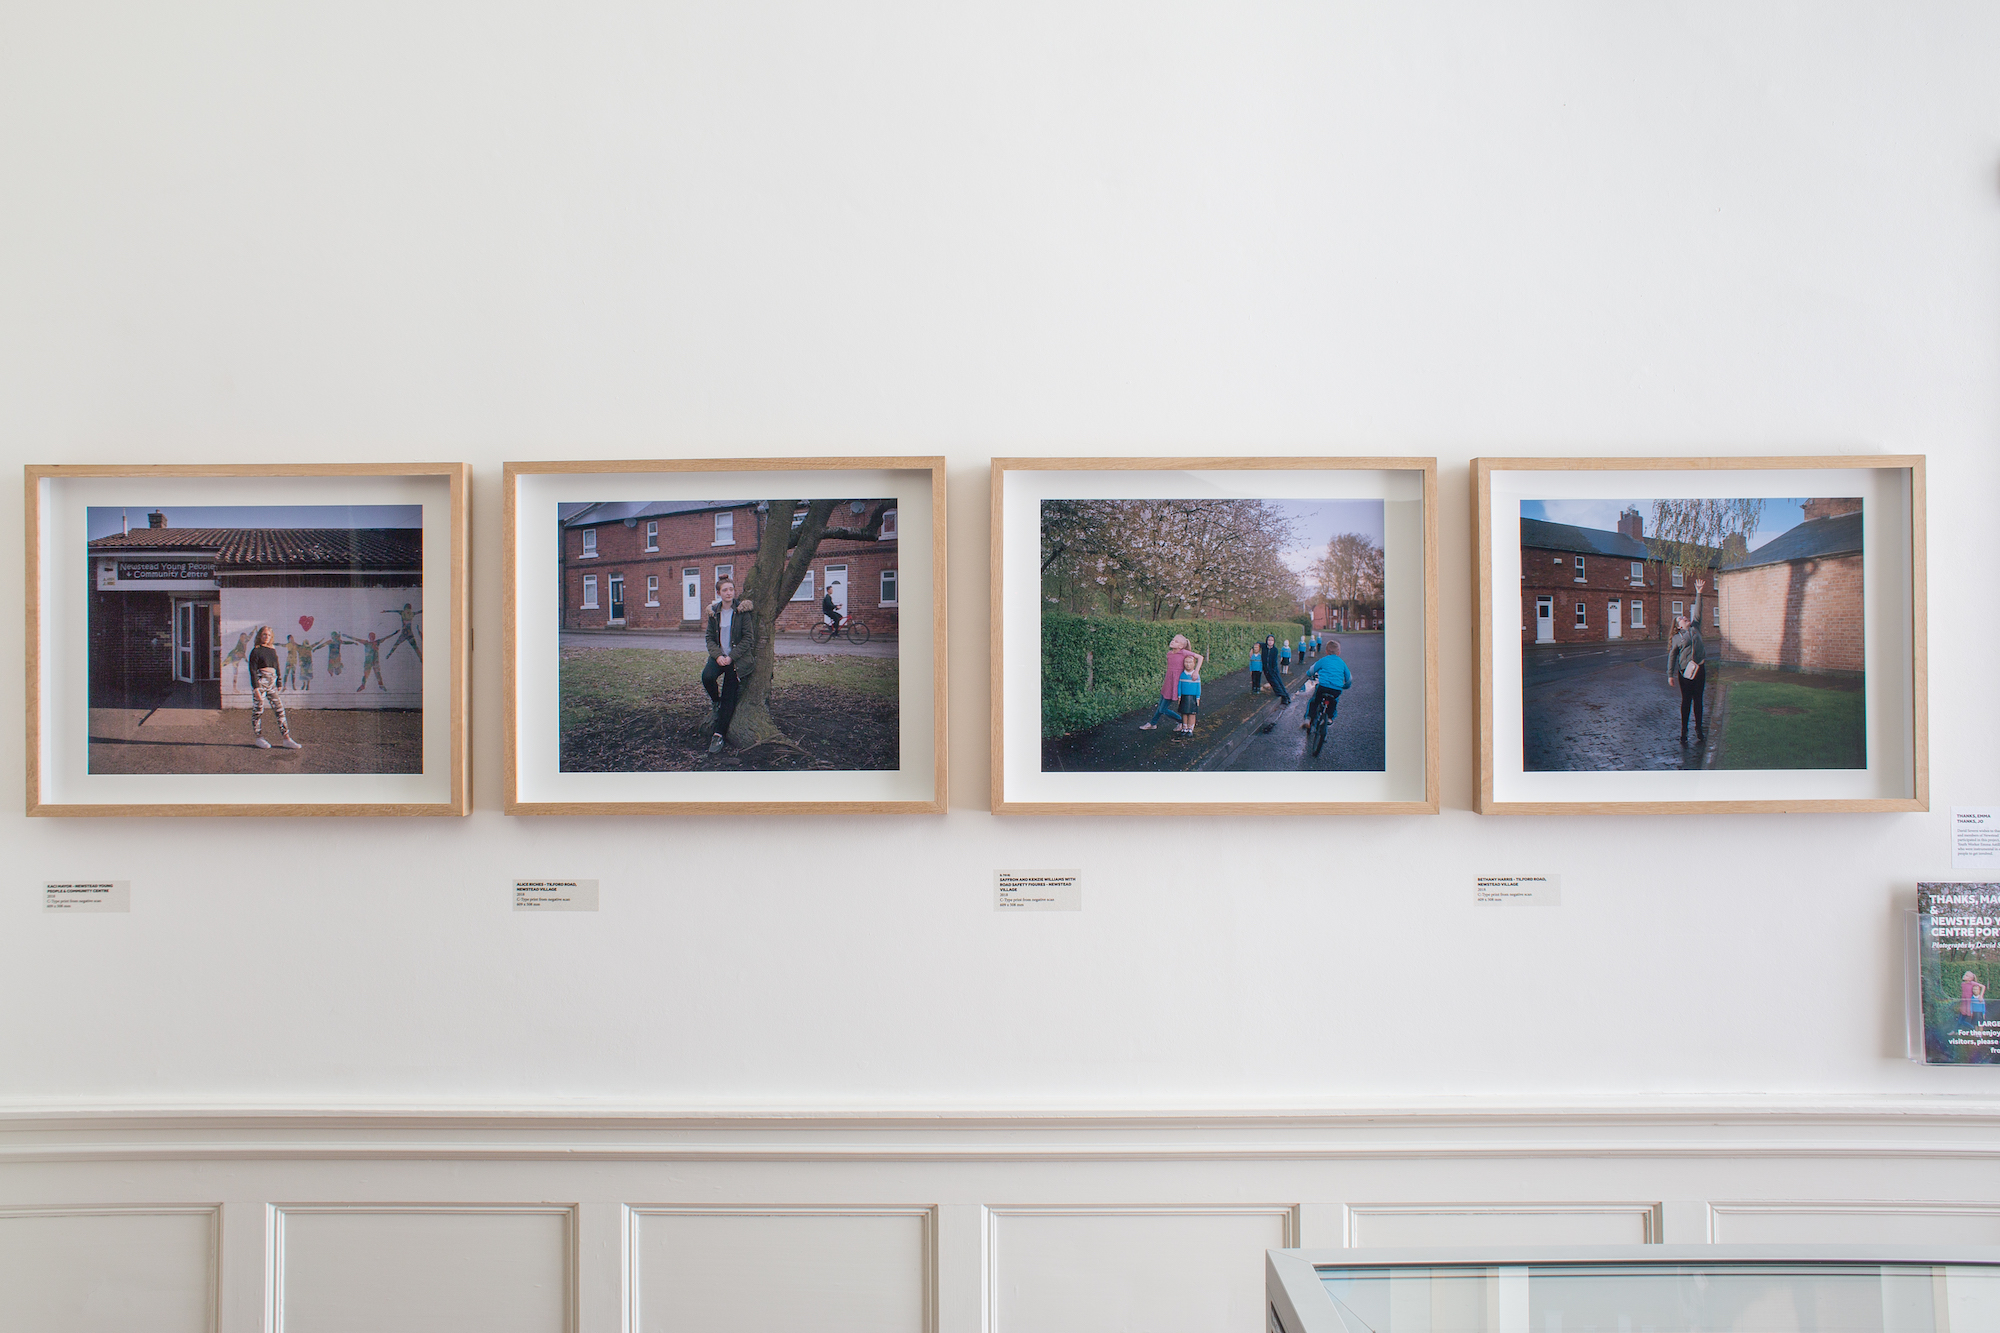 Thanks Maggie & Newstead Youth Centre Portraits exhibition at Newstead Abbey, Nottinghamshire.